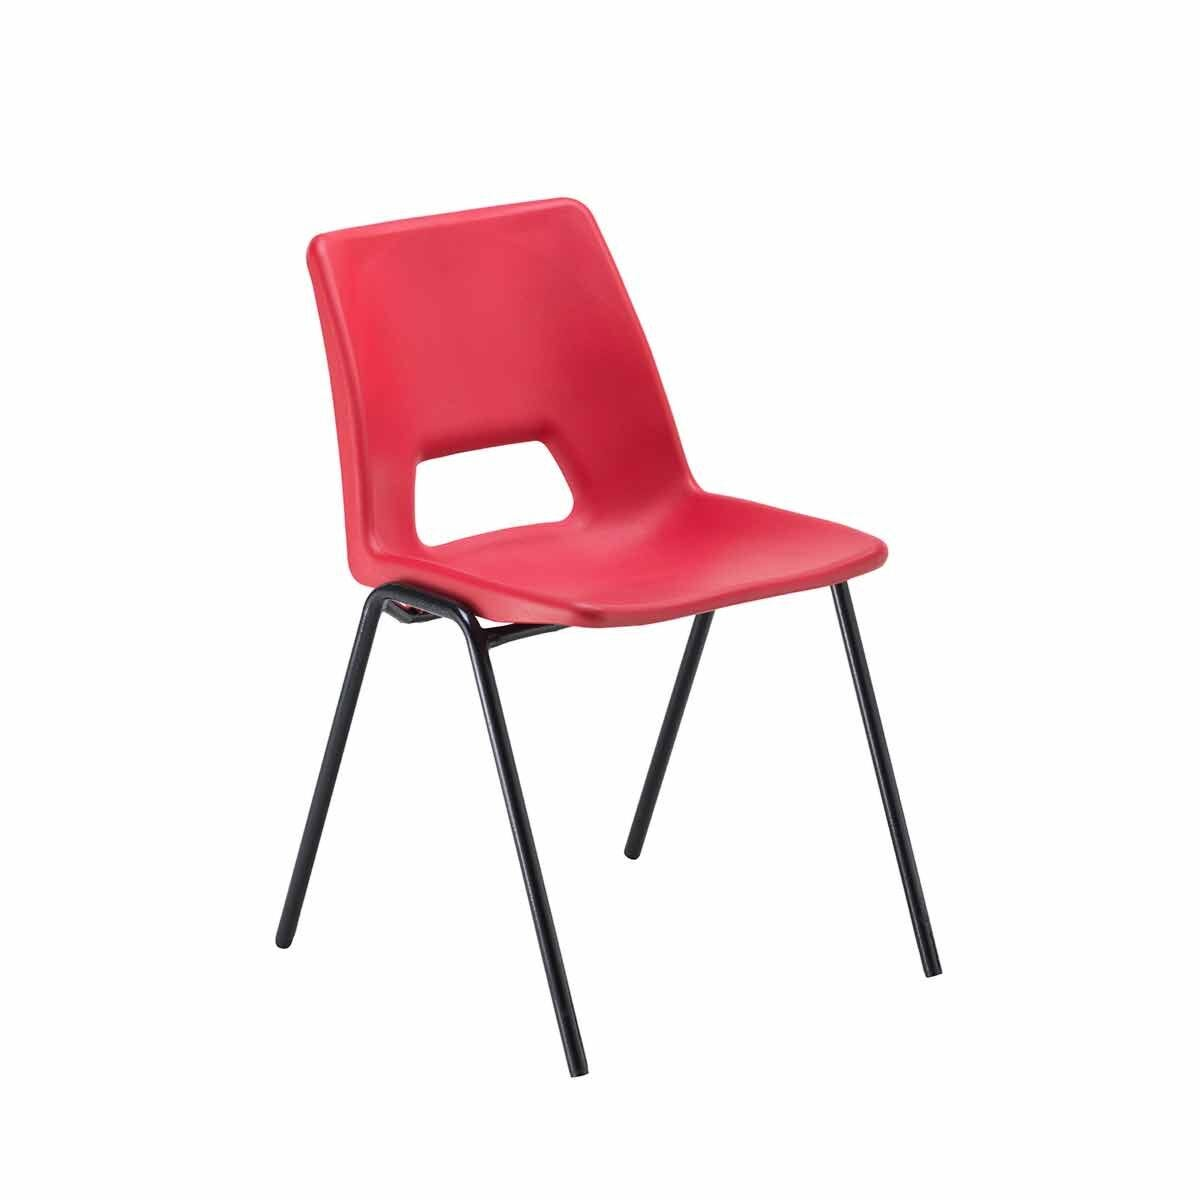 TC Office Economy Polypropylene Chair Red